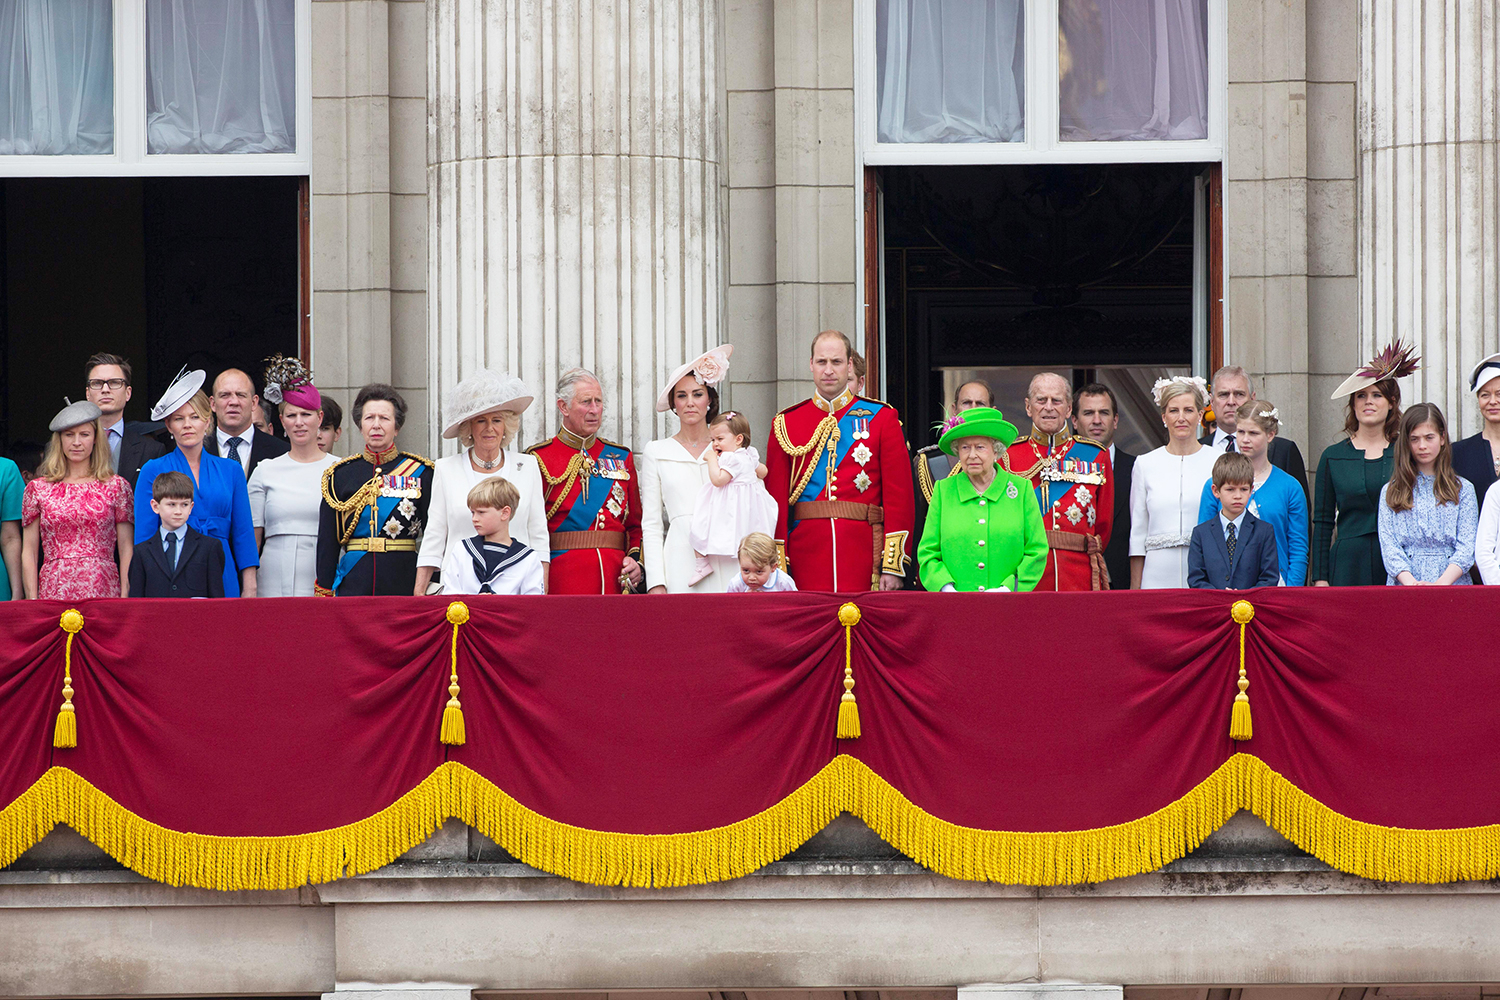 Members of the Royal family and guests stand on the balcony of Buckingham Palace to watch a fly-past of aircrafts by the Royal Air Force, in London on June 11, 2016.